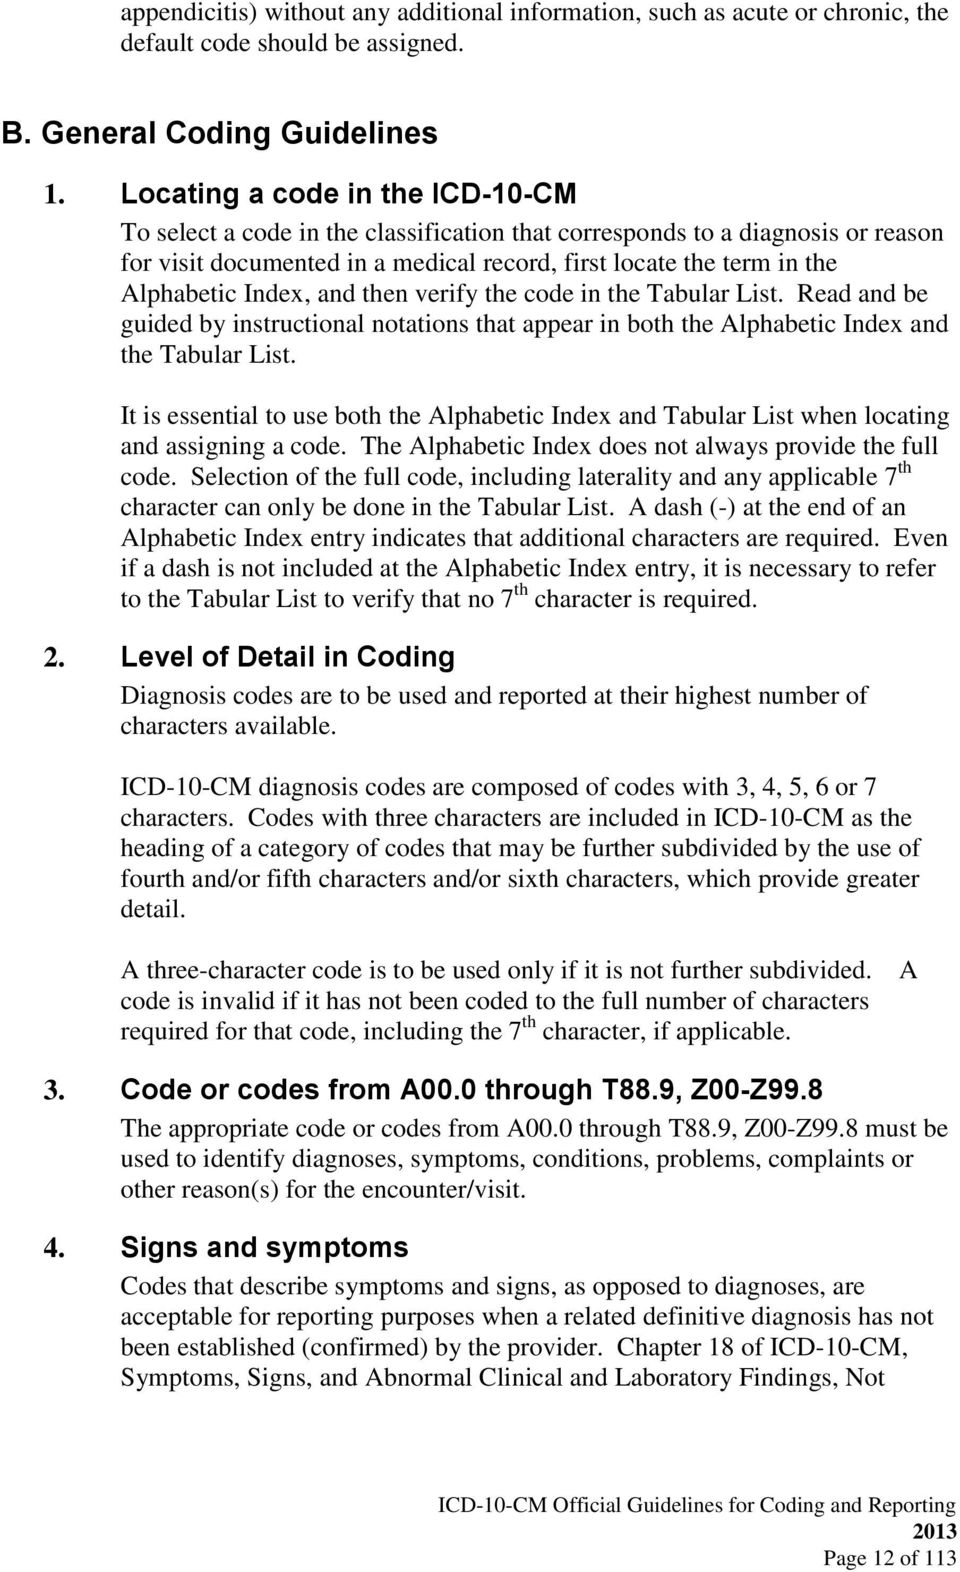 icd 10 cm official guidelines for coding and reporting 2013 page 2 rh docplayer net Sample Pics of ICD-10 Codes and ICD 9 Codes ICD 9 Search